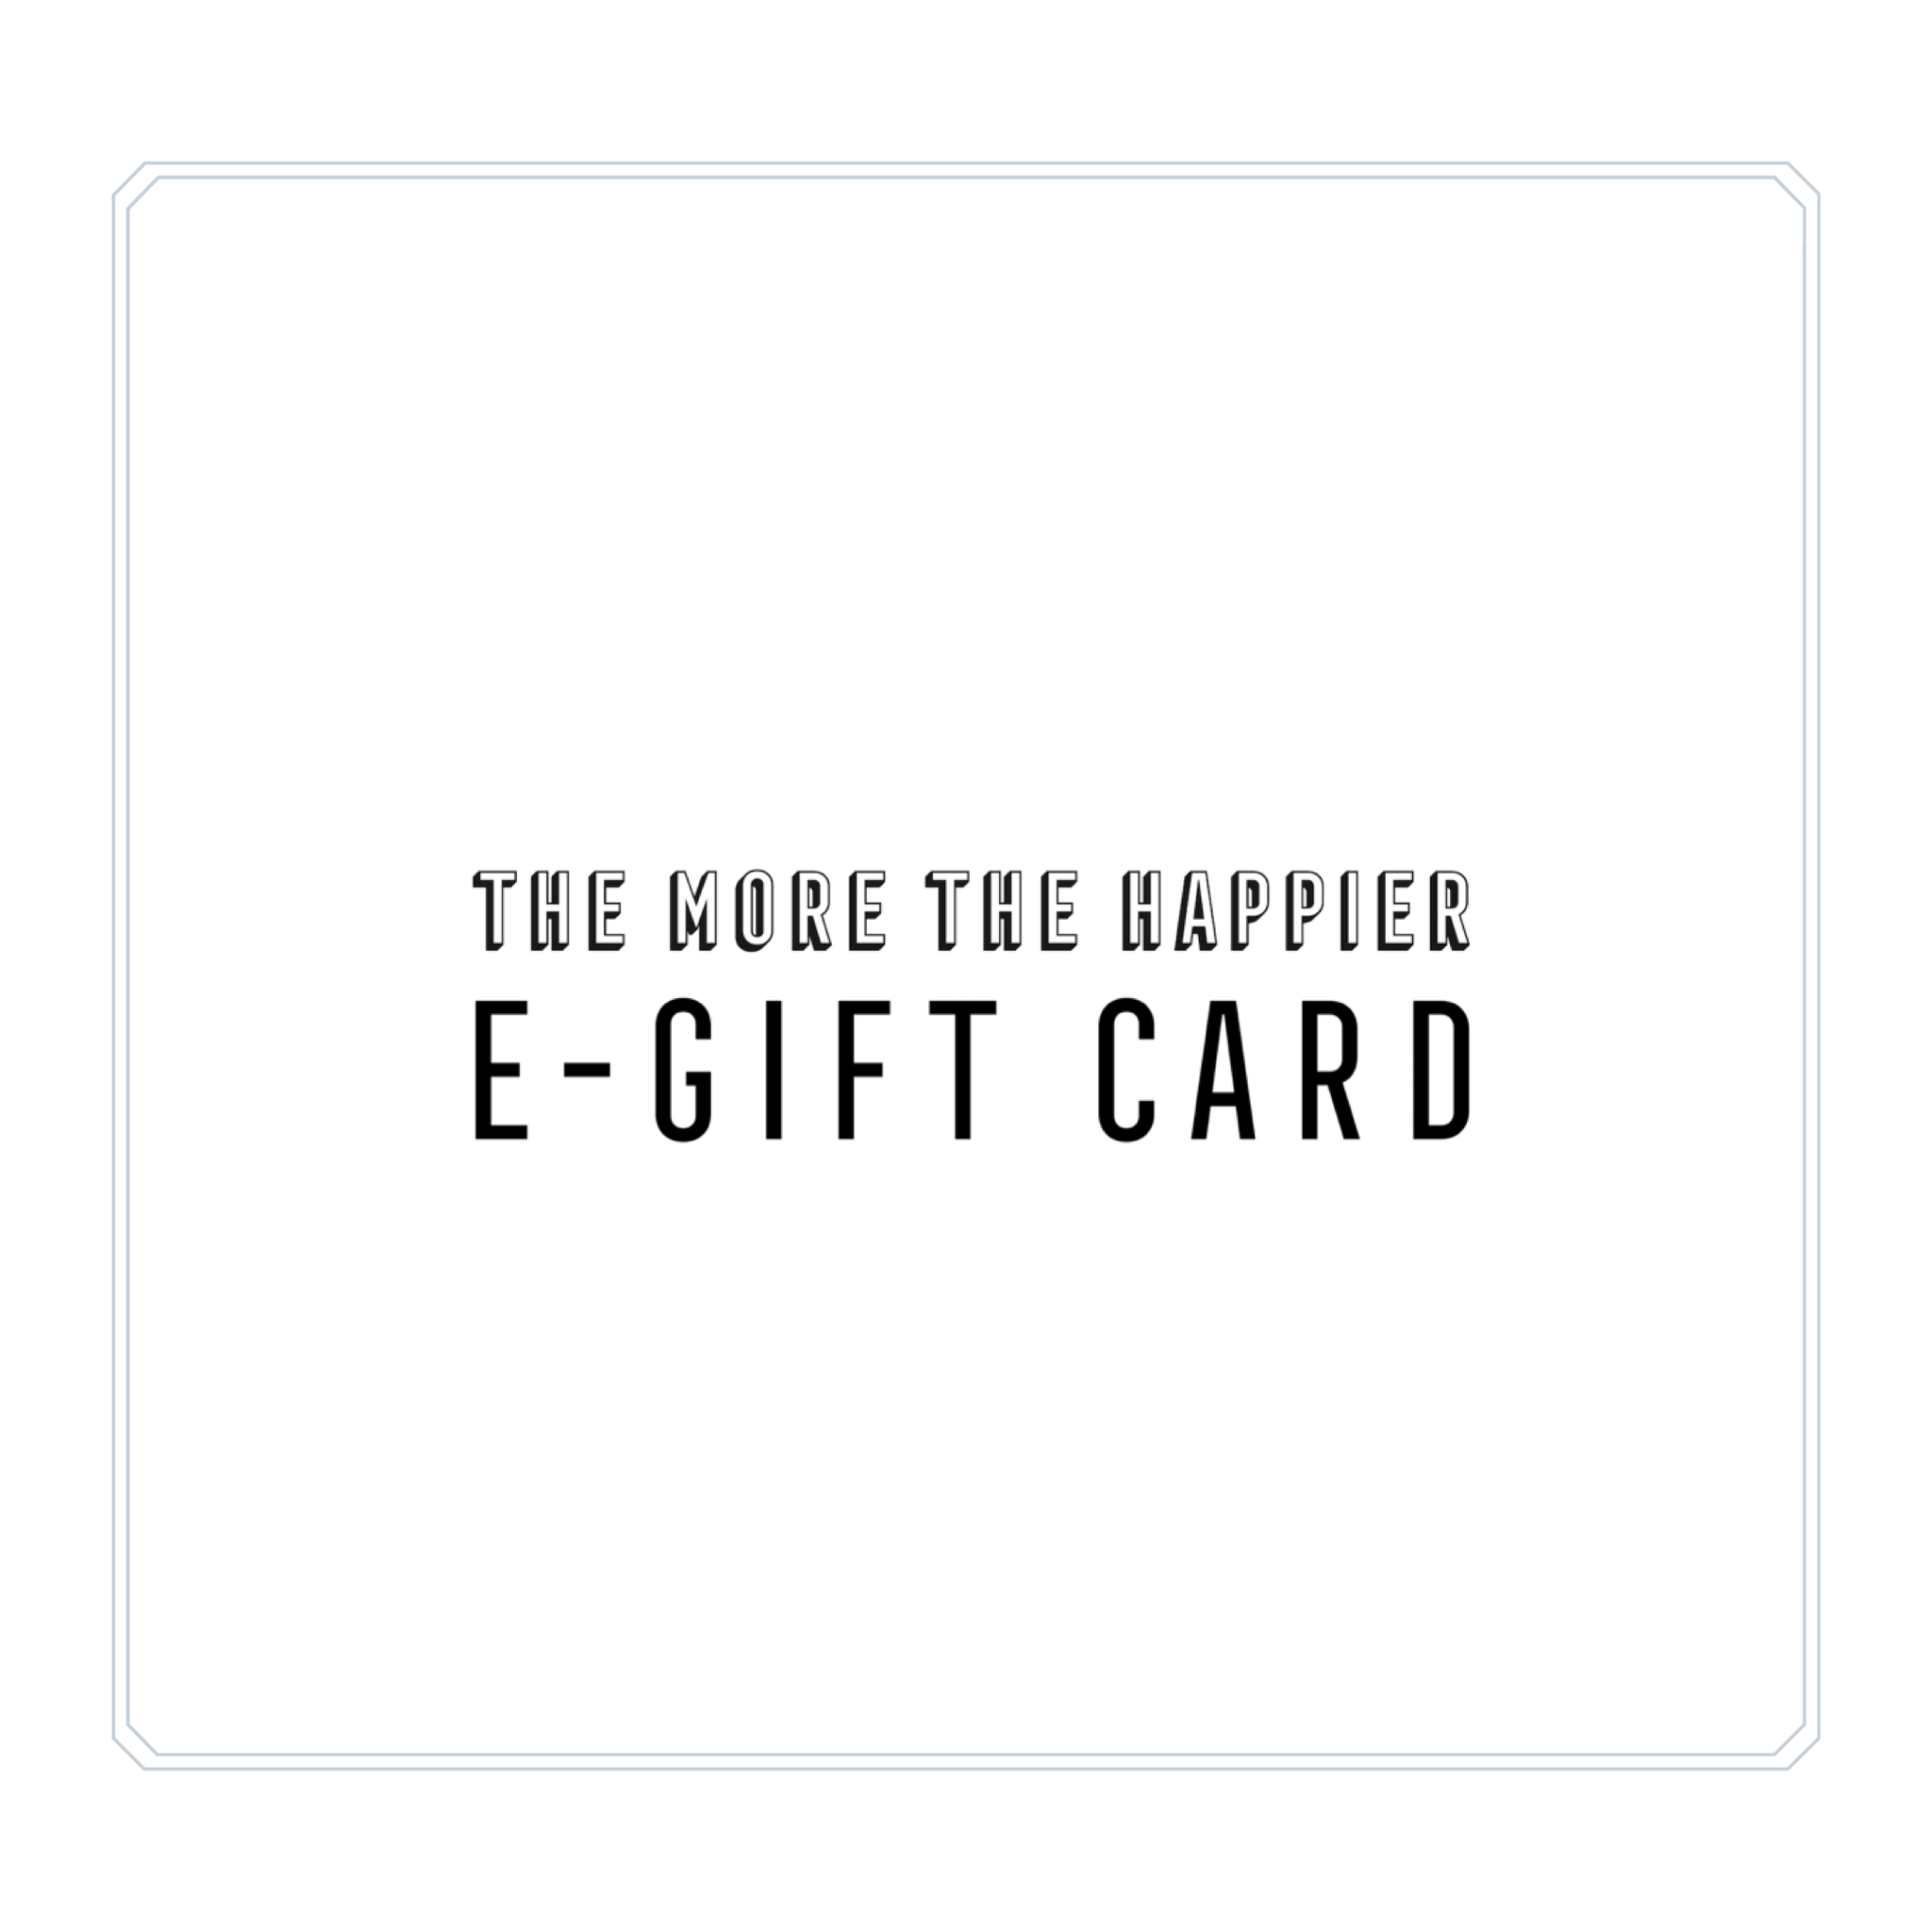 THE MORE THE HAPPIER offers online gift cards for your convenient shopping and gift giving!